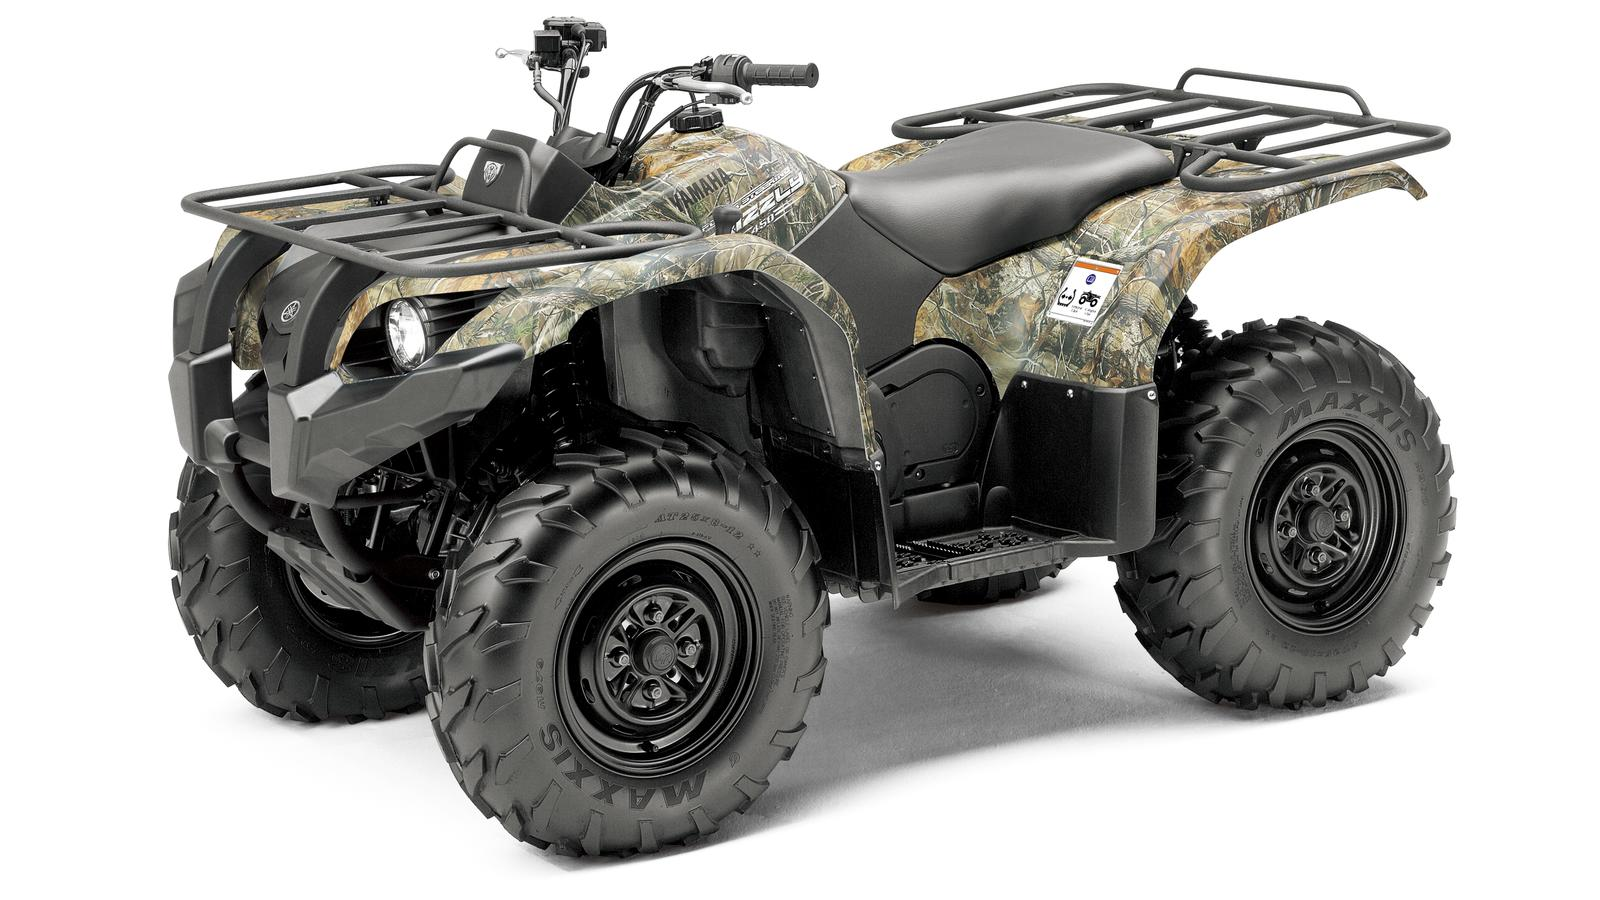 YAMAHA Grizzly 450  2011 photo 10